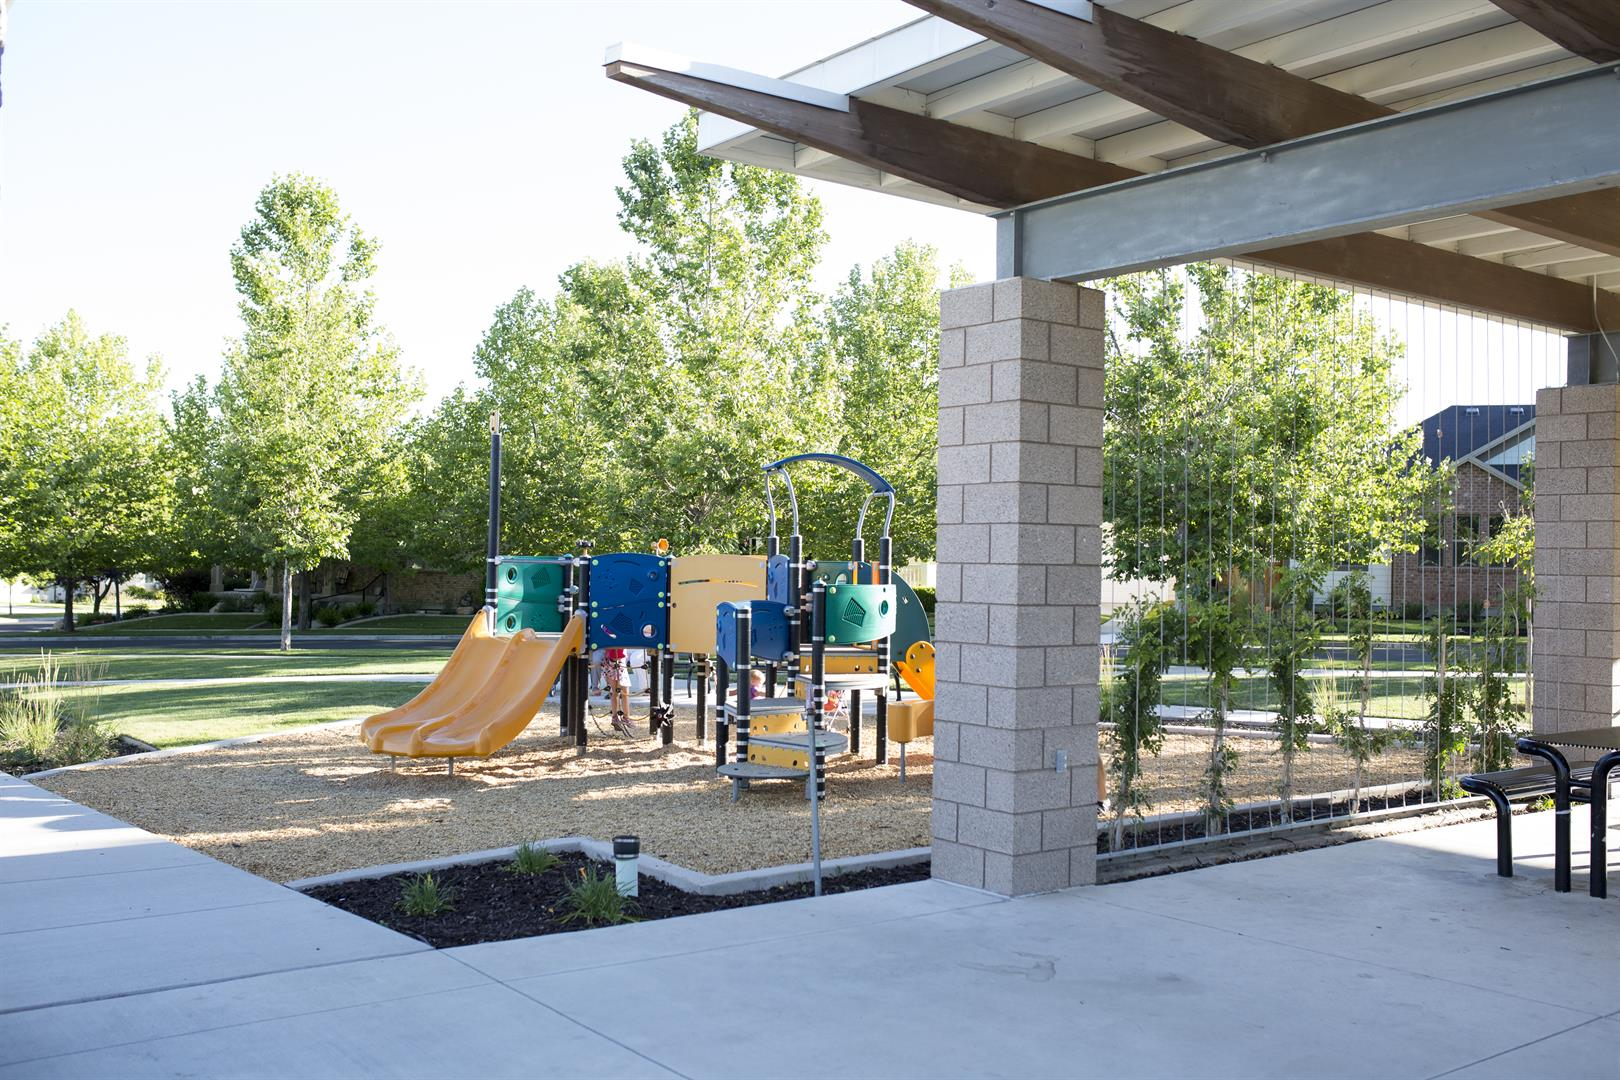 founders park play equipment